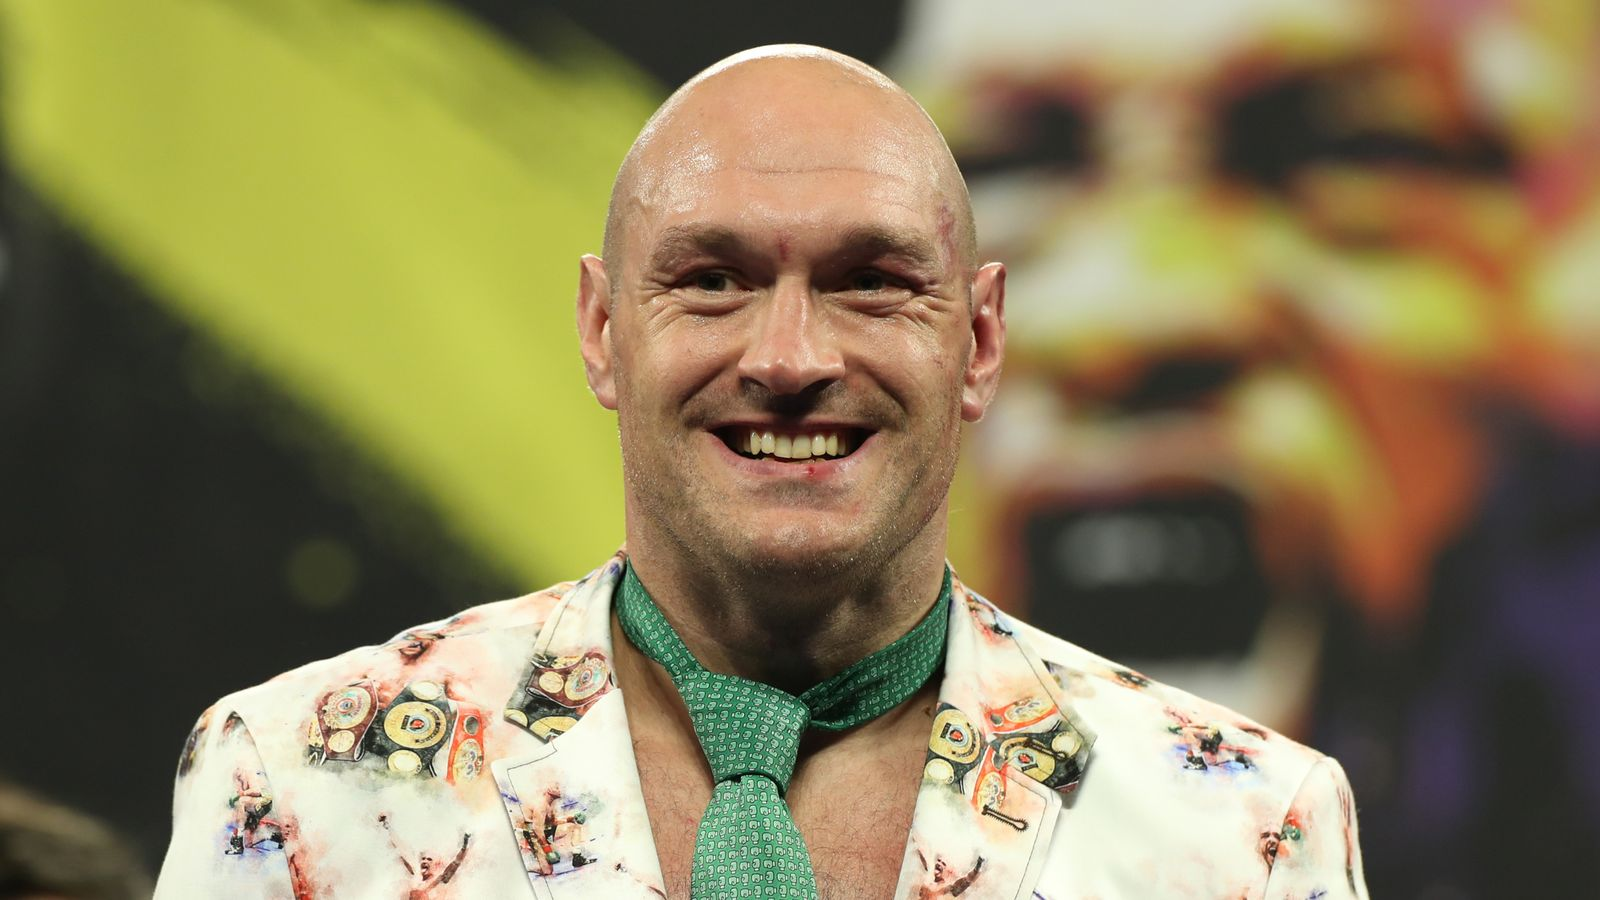 Tyson Fury: Heavyweight Anthony Joshua Faces World Cup Boxing to Consider 'Big Bids' Boxing News